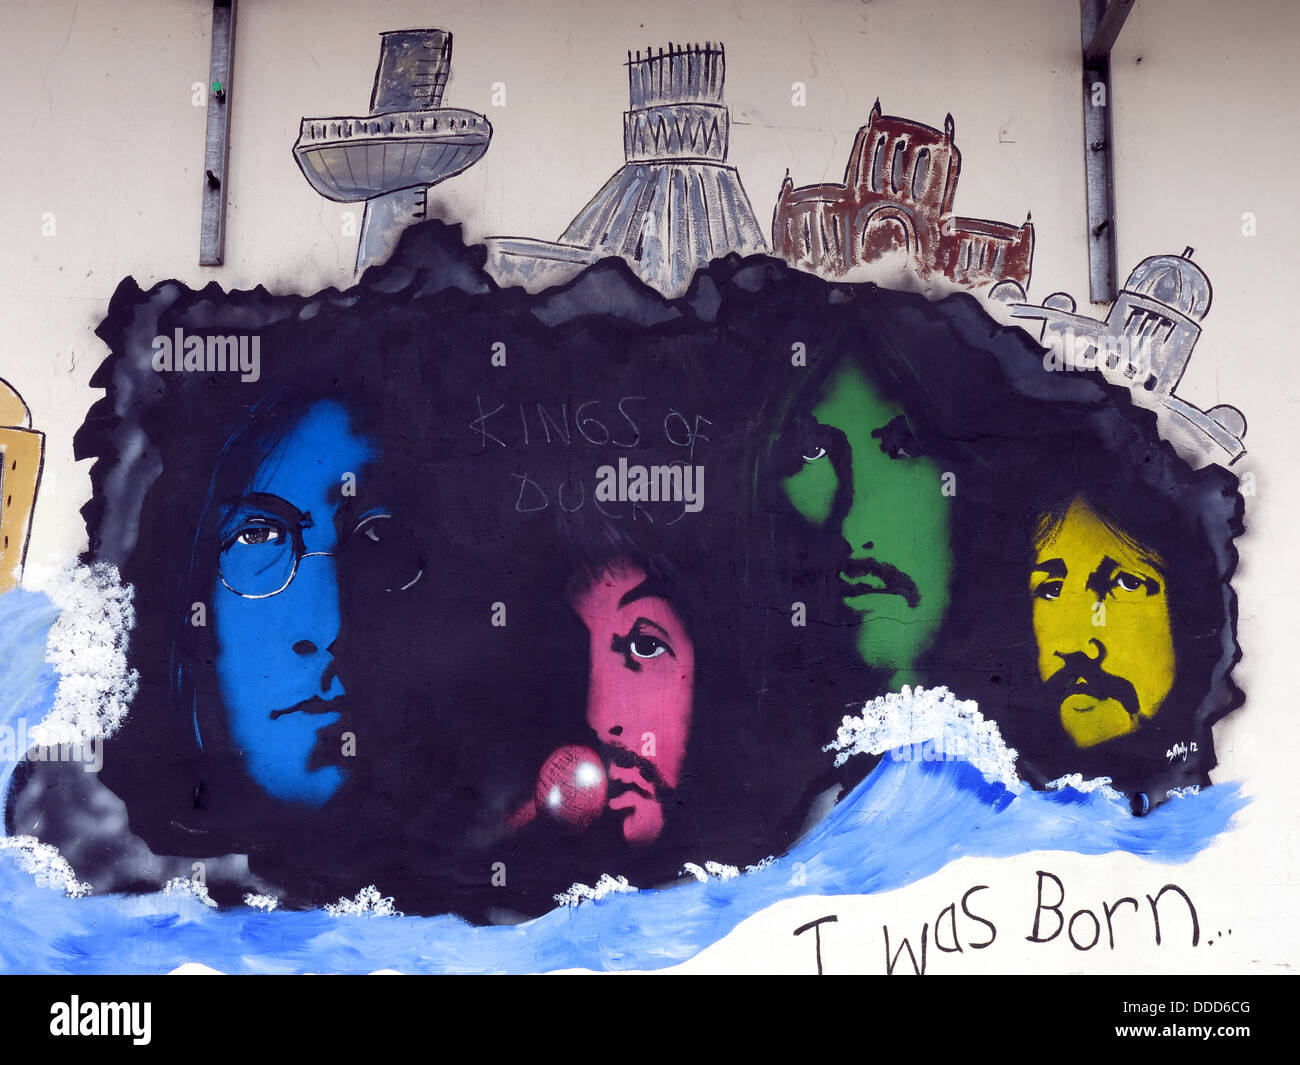 Paisley Street Beatles Liverpool art work mural, Liverpool docklands, Merseyside, North West England, UK - Stock Image